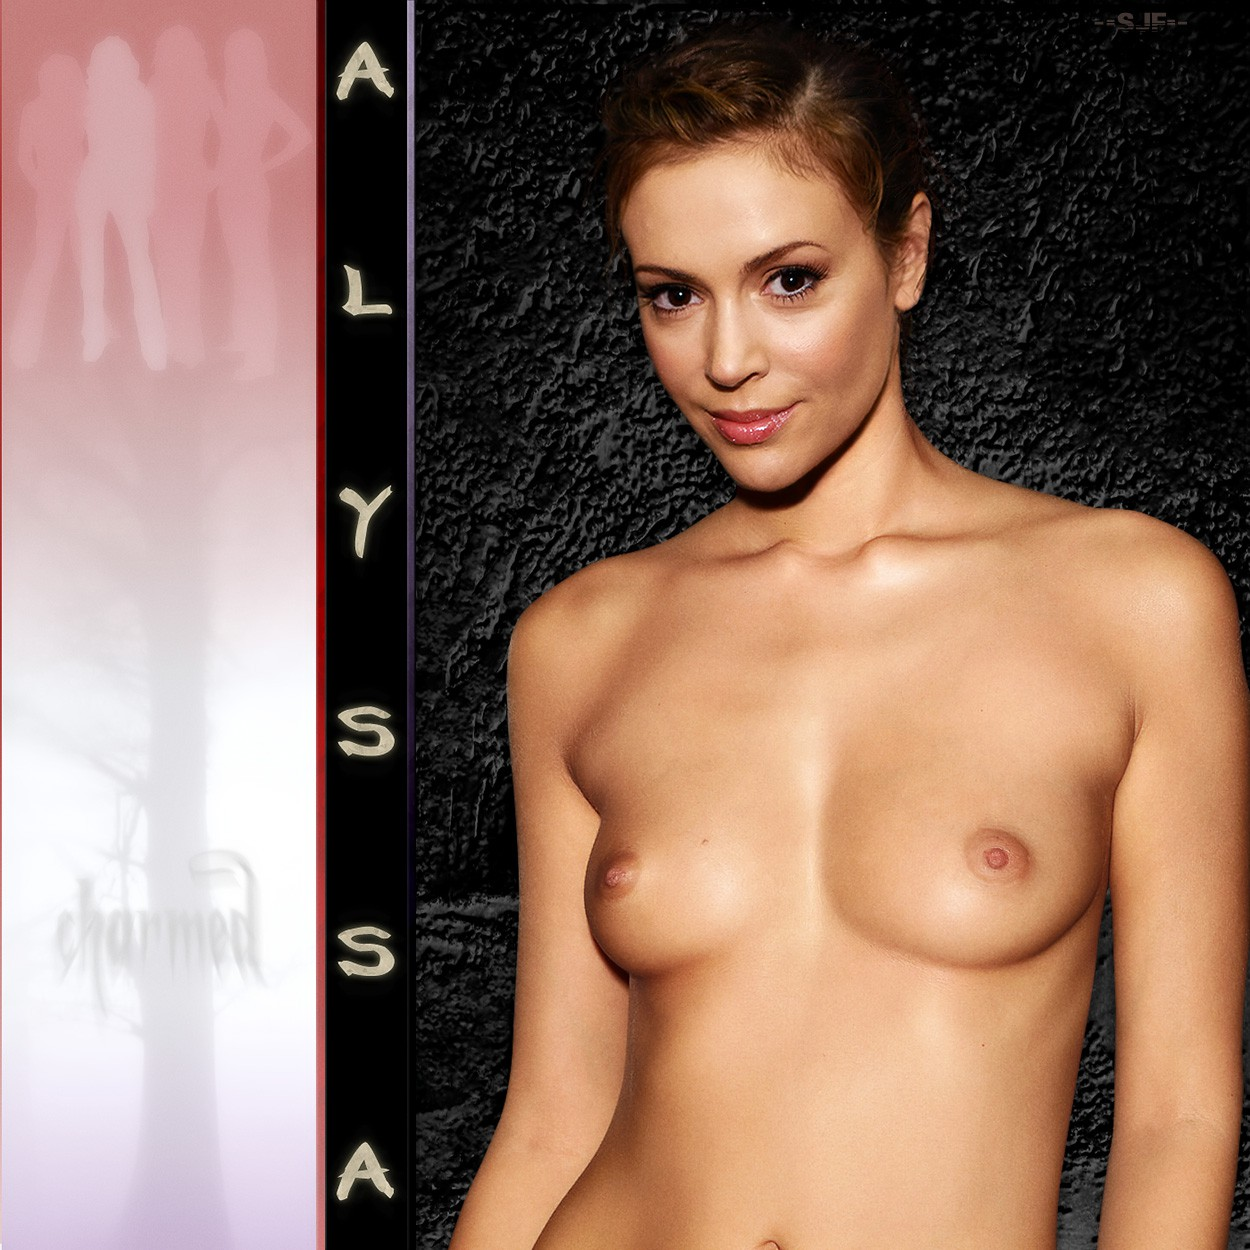 Alyssa milano naked fake 9